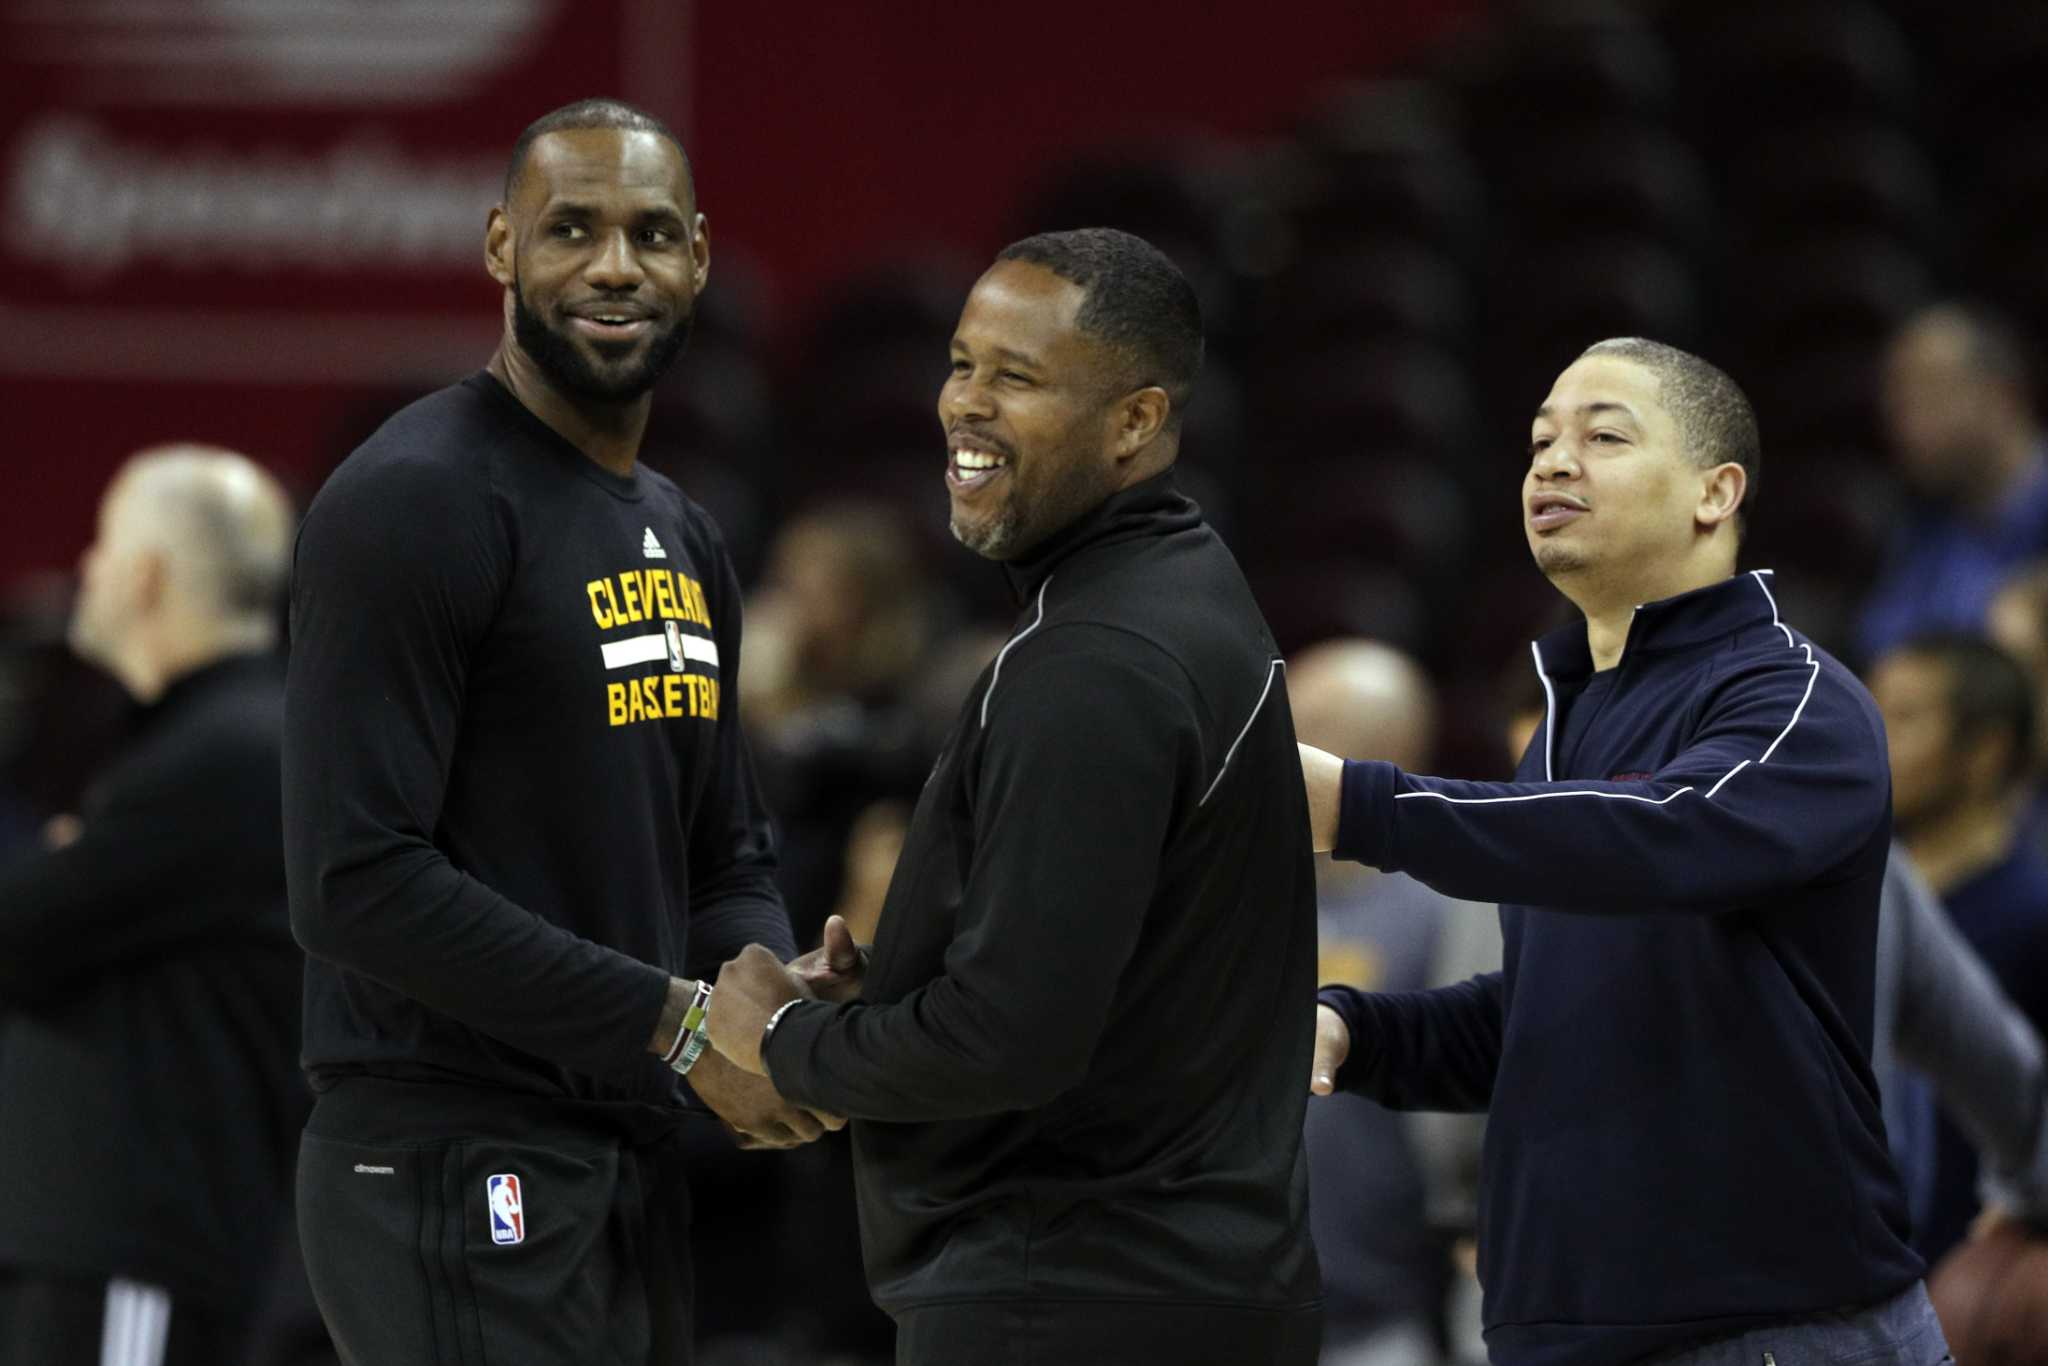 LeBron James, Damon Jones, and Tyronn Lue